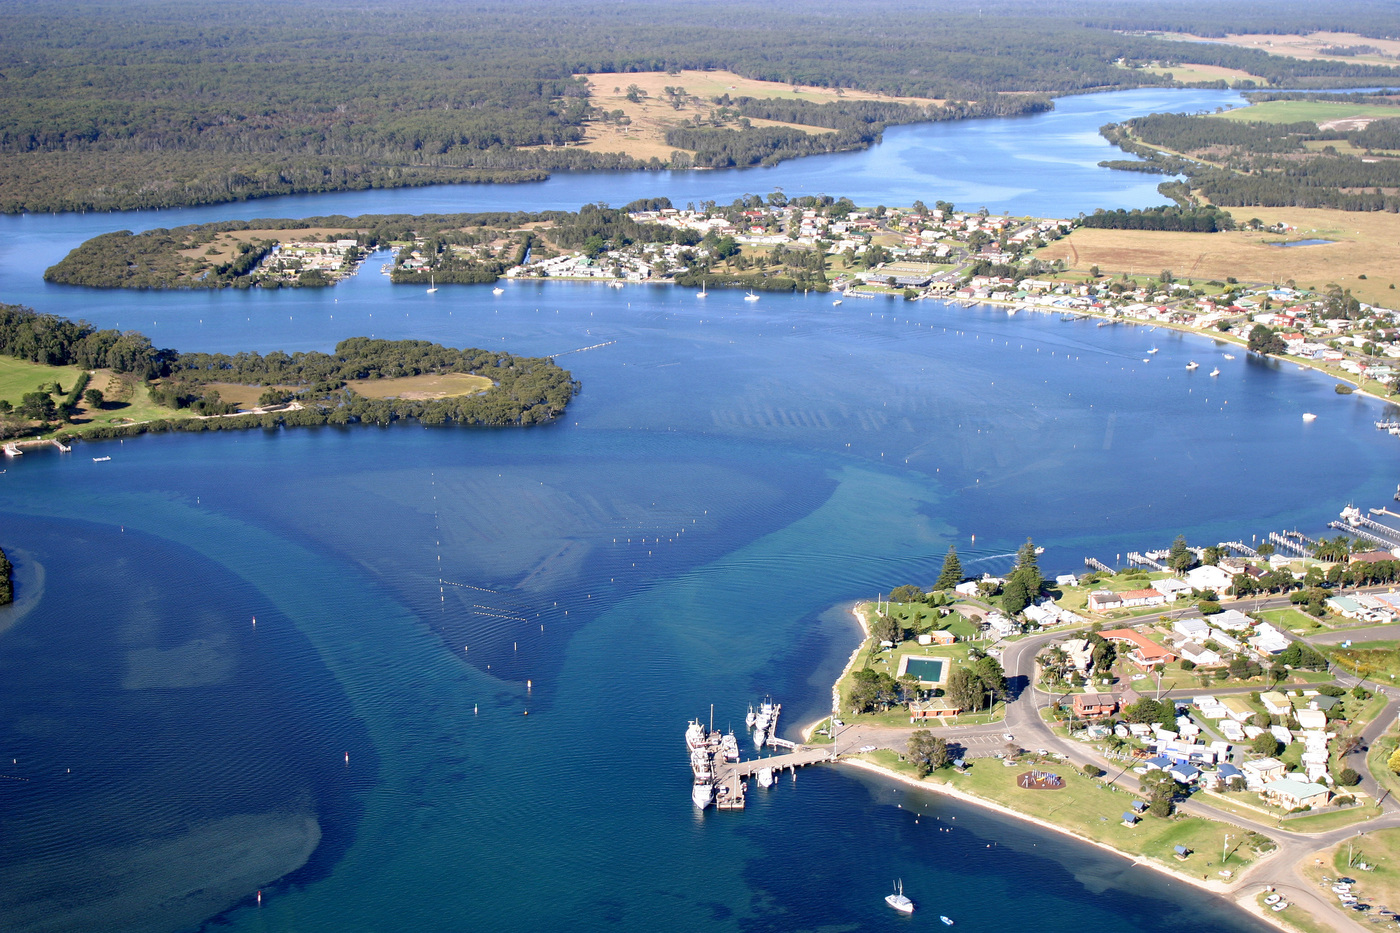 Why is there continued settlement in the Shoalhaven River